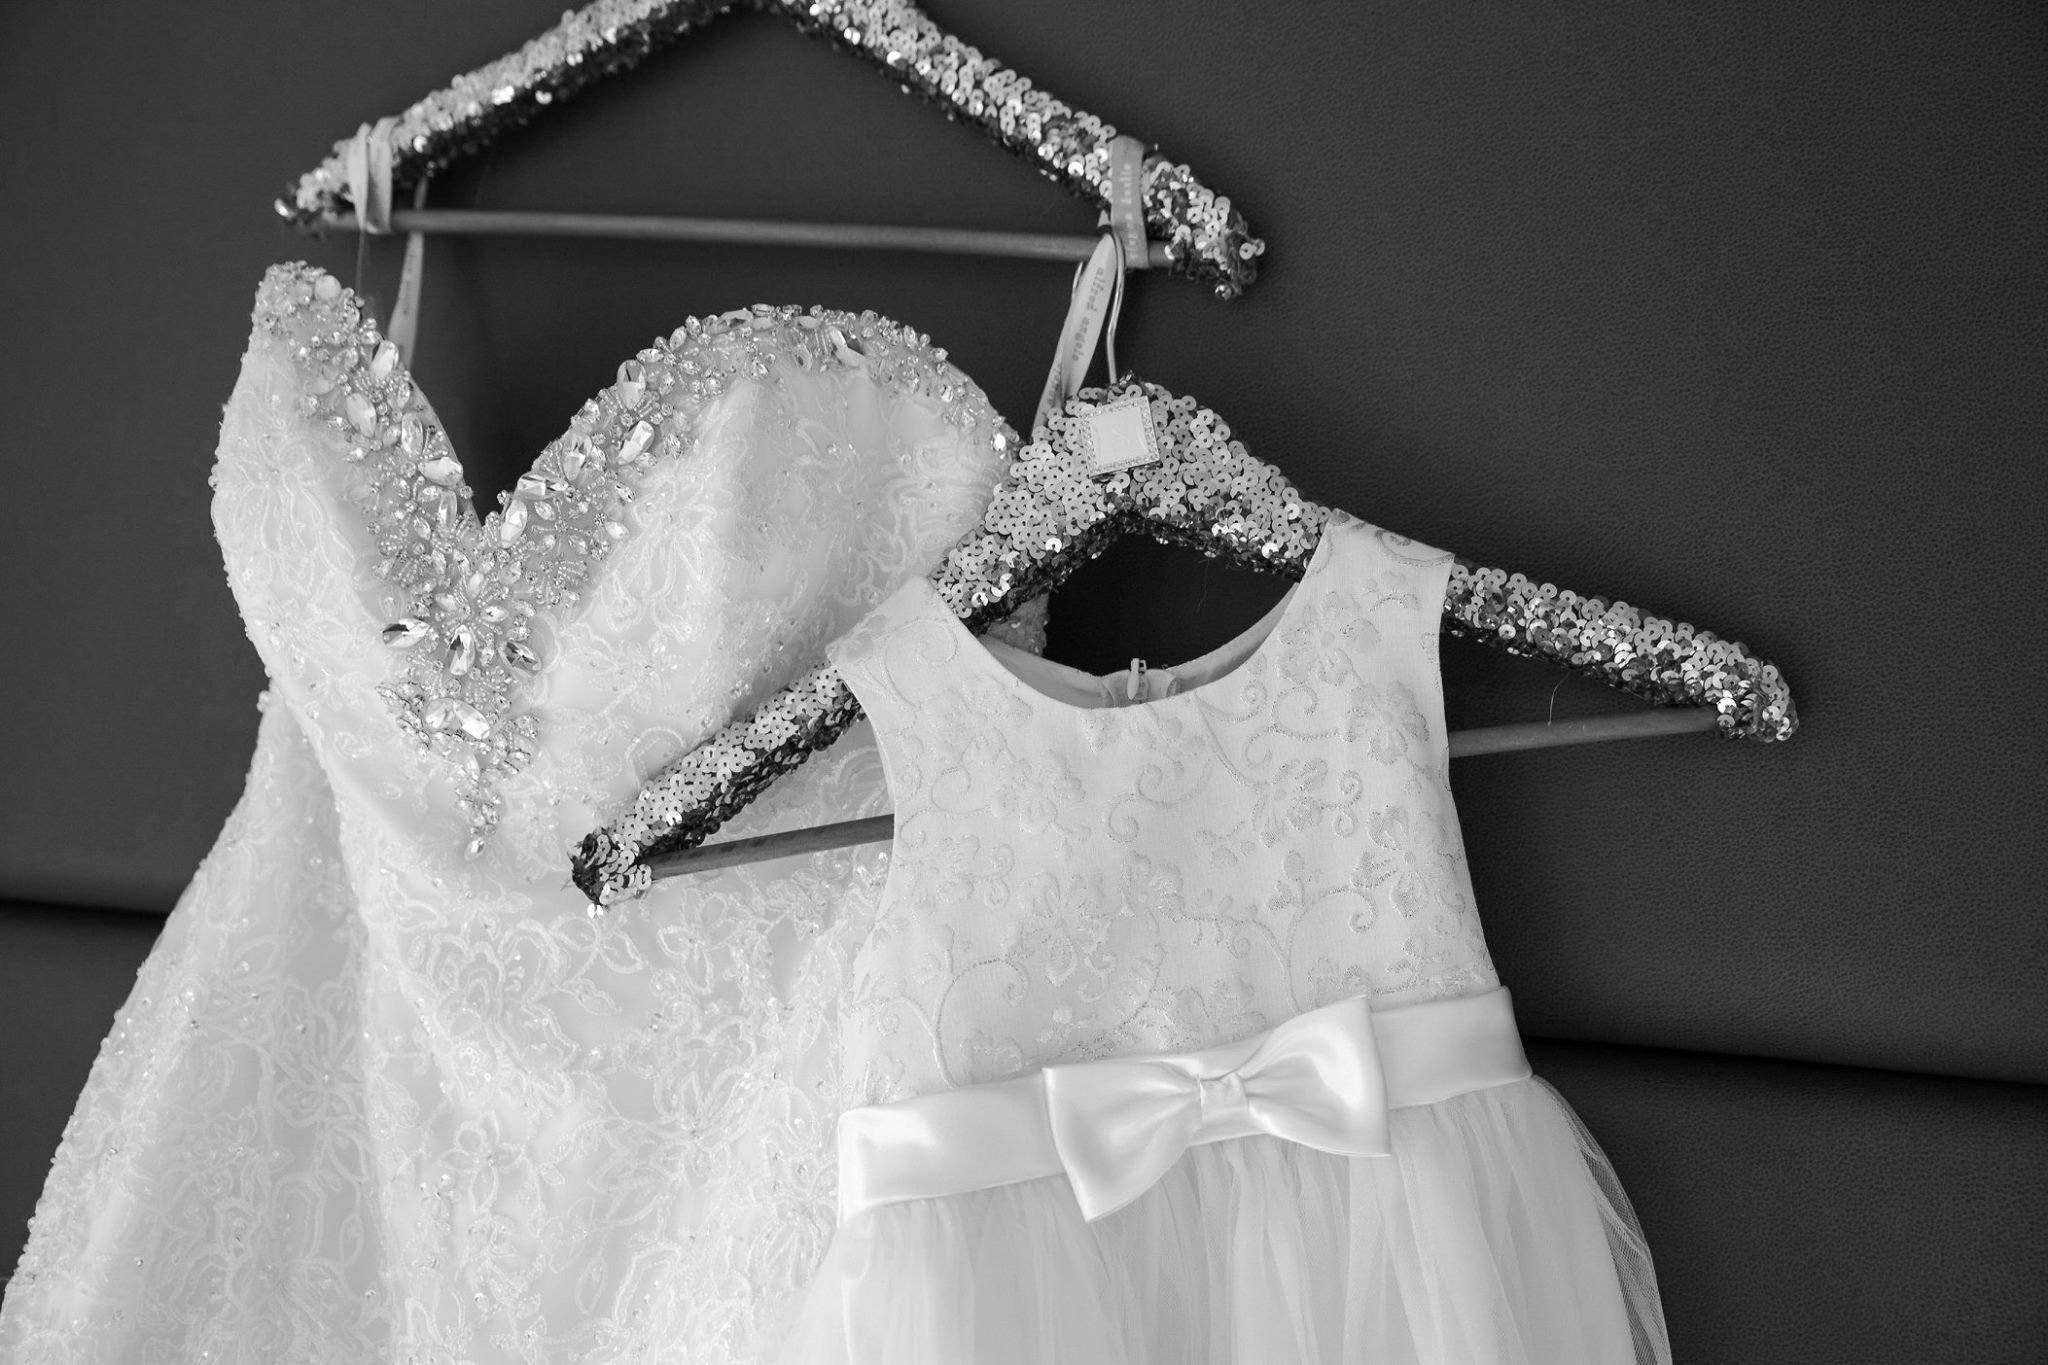 Jaquie's gorgeous dress with Jaylah's sweet flower girl dress